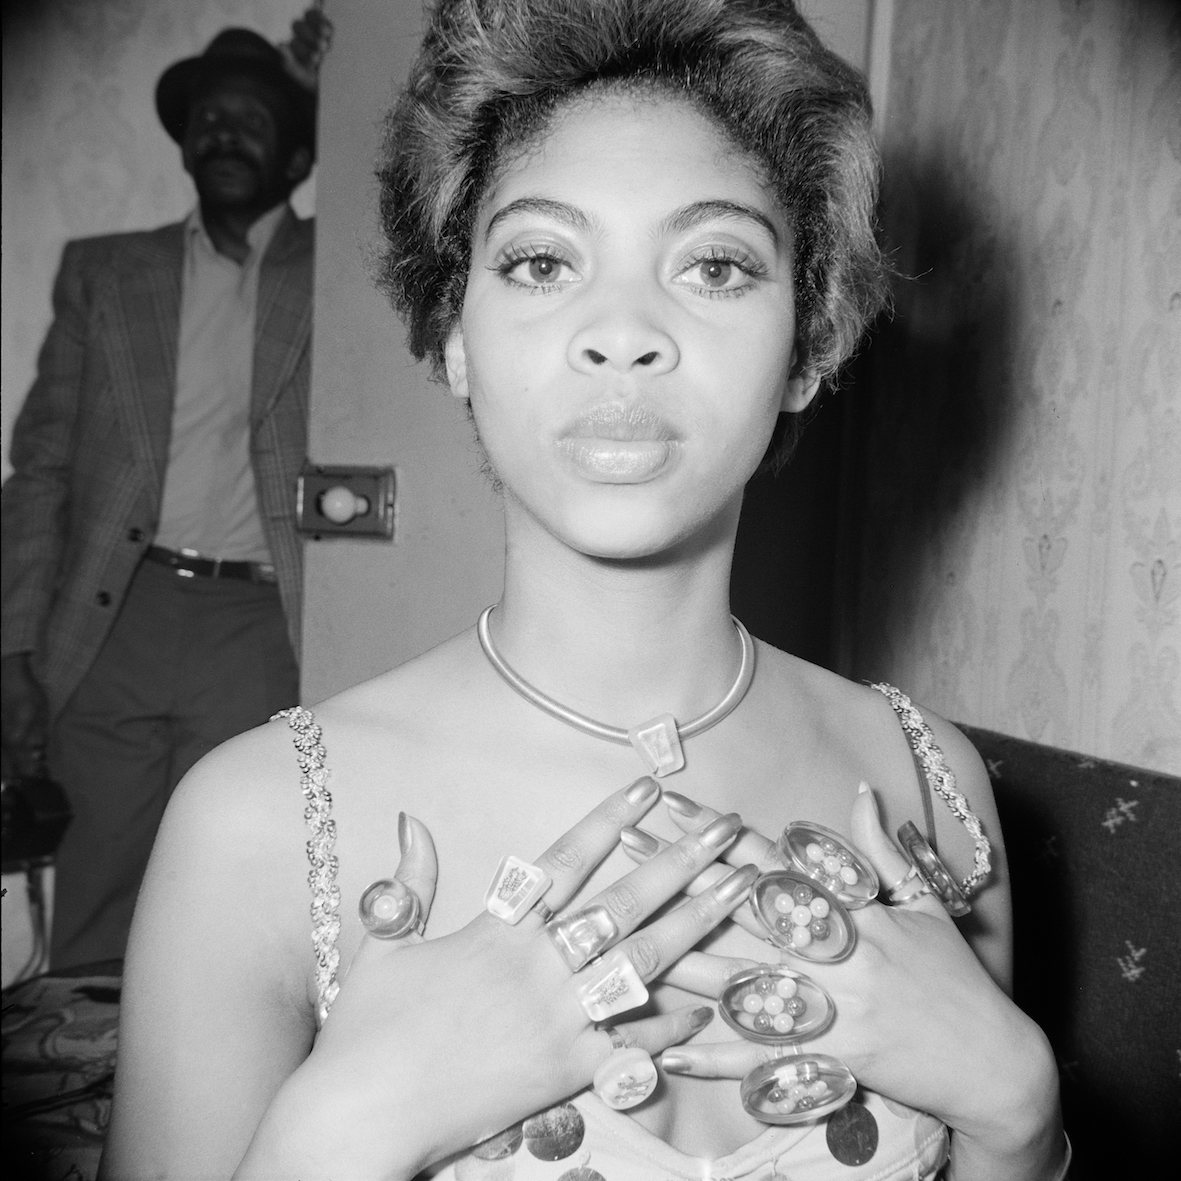 Holley modelling jewellery at Blythe Road,  Hammersmith,London,early 1970s.From the portfolio 'Black Beauty Pageants'.Courtesy of © Raphael Albert/Autograph ABP